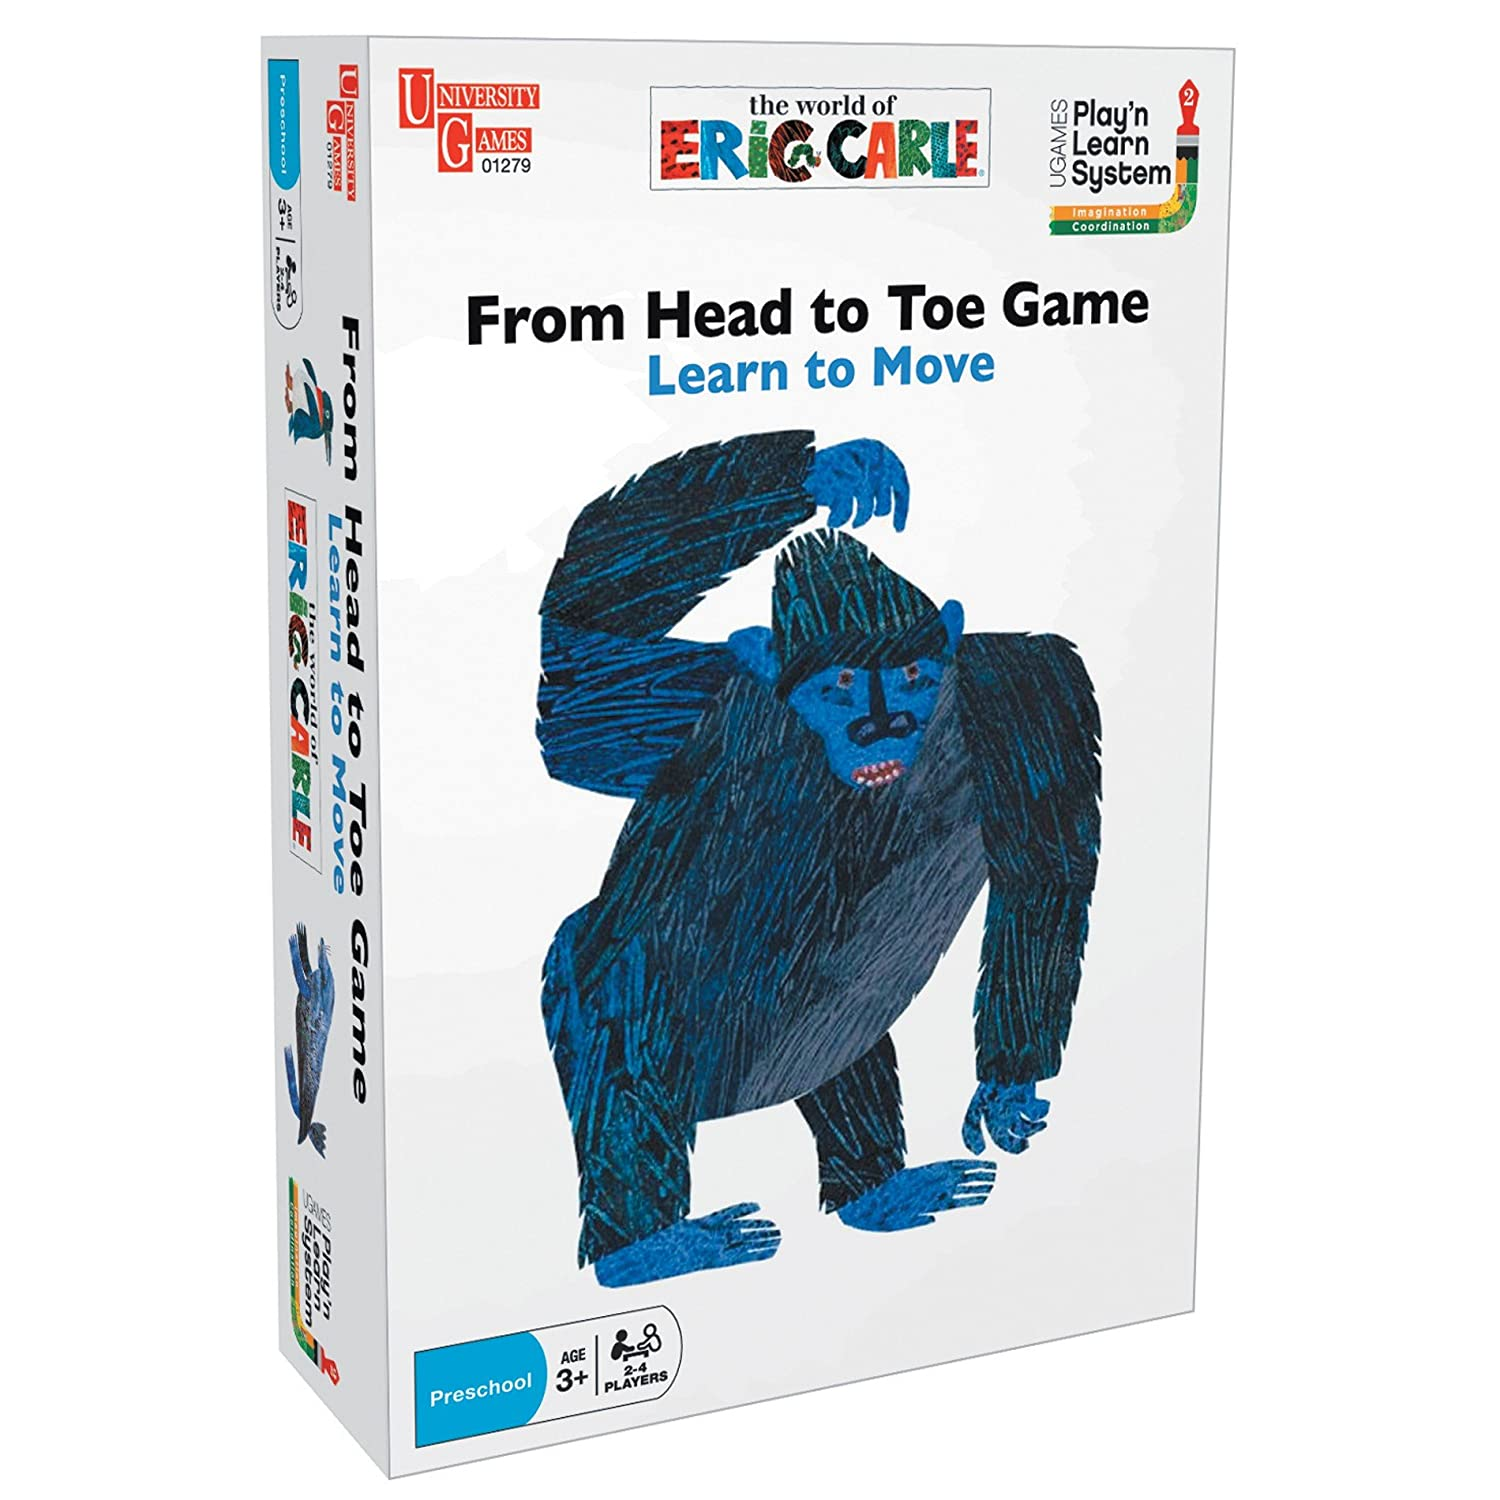 Amazon.com: University Games from Head to Toe Eric Carle Game And ...